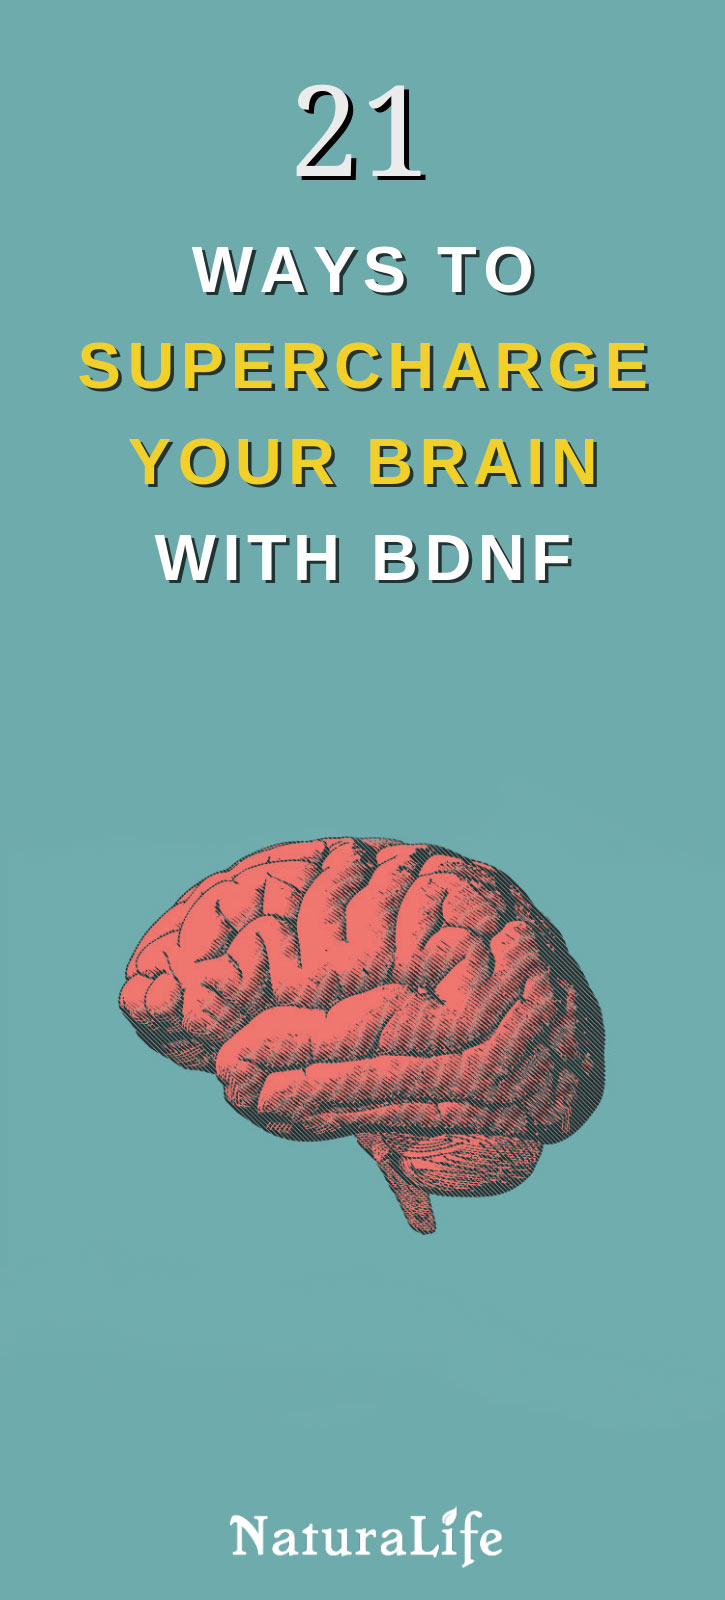 BDNF is a molecule that will make you smarter and learn better whether you\'re a student, in school, or want to crush it at work. Here are 21 powerful ways to improve your brain function by boosting your BDNF levels--all backed by scientific evidence!